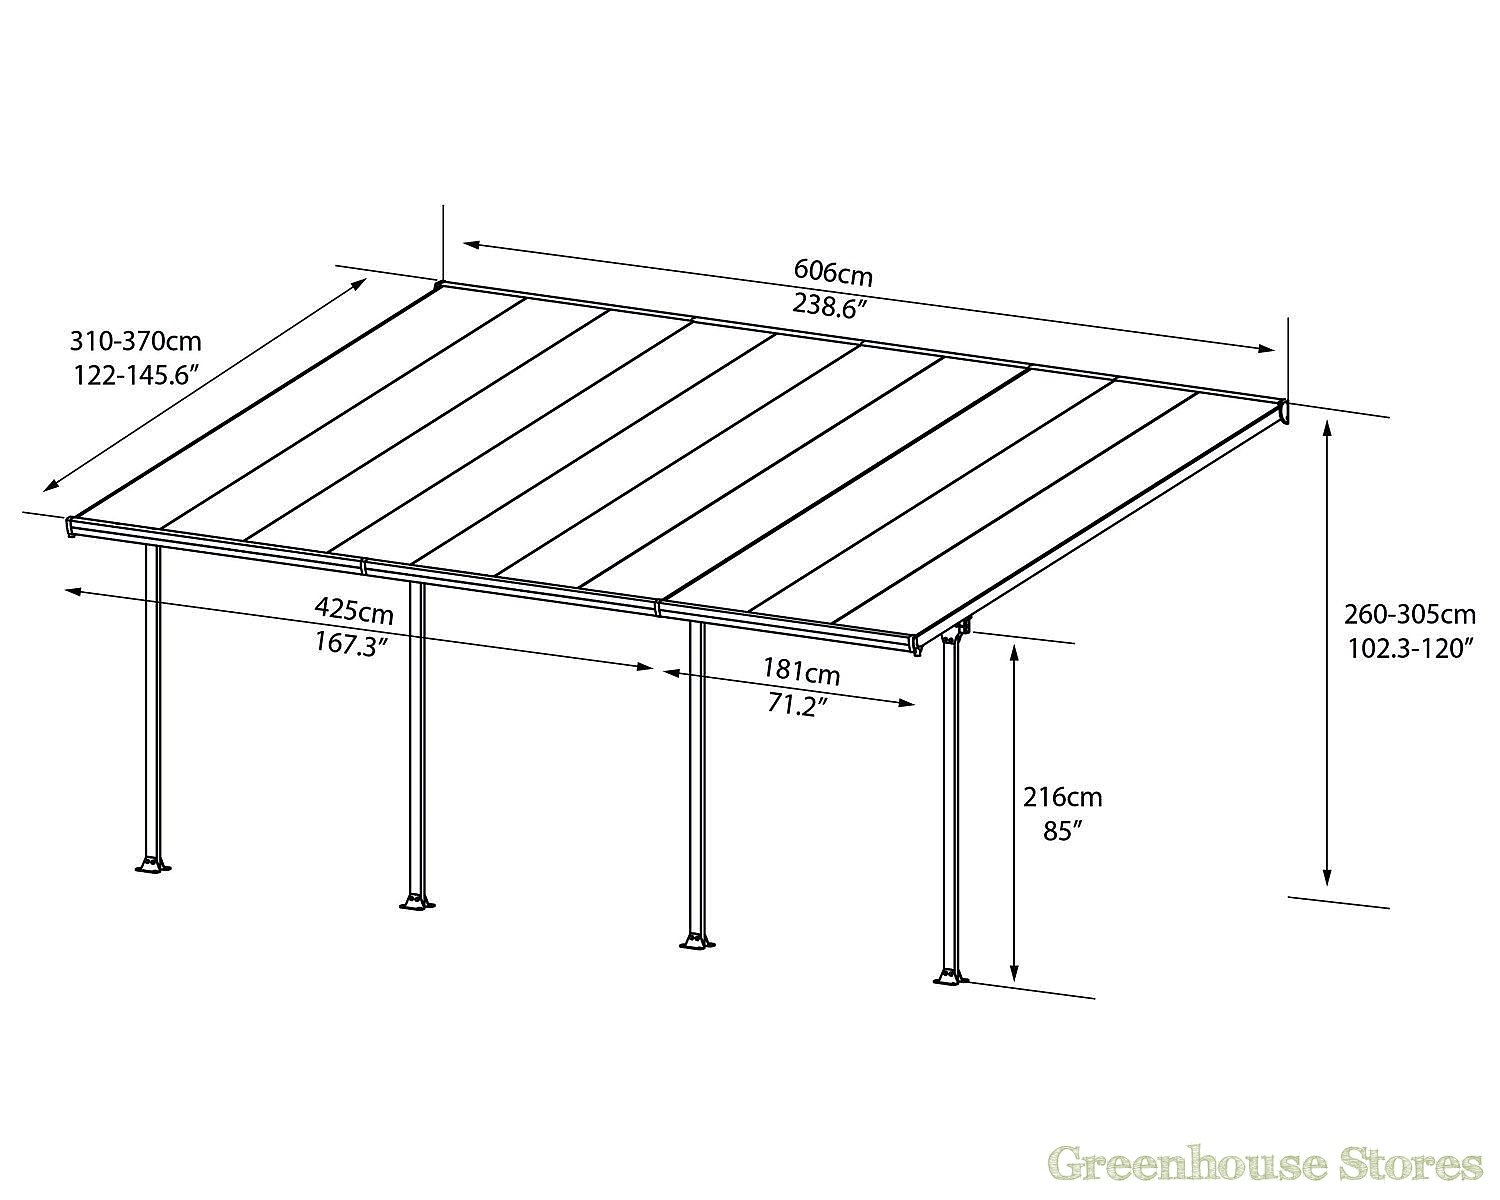 Palram feria 4m carport in 2 lengths greenhouse stores for Carport size for 2 cars